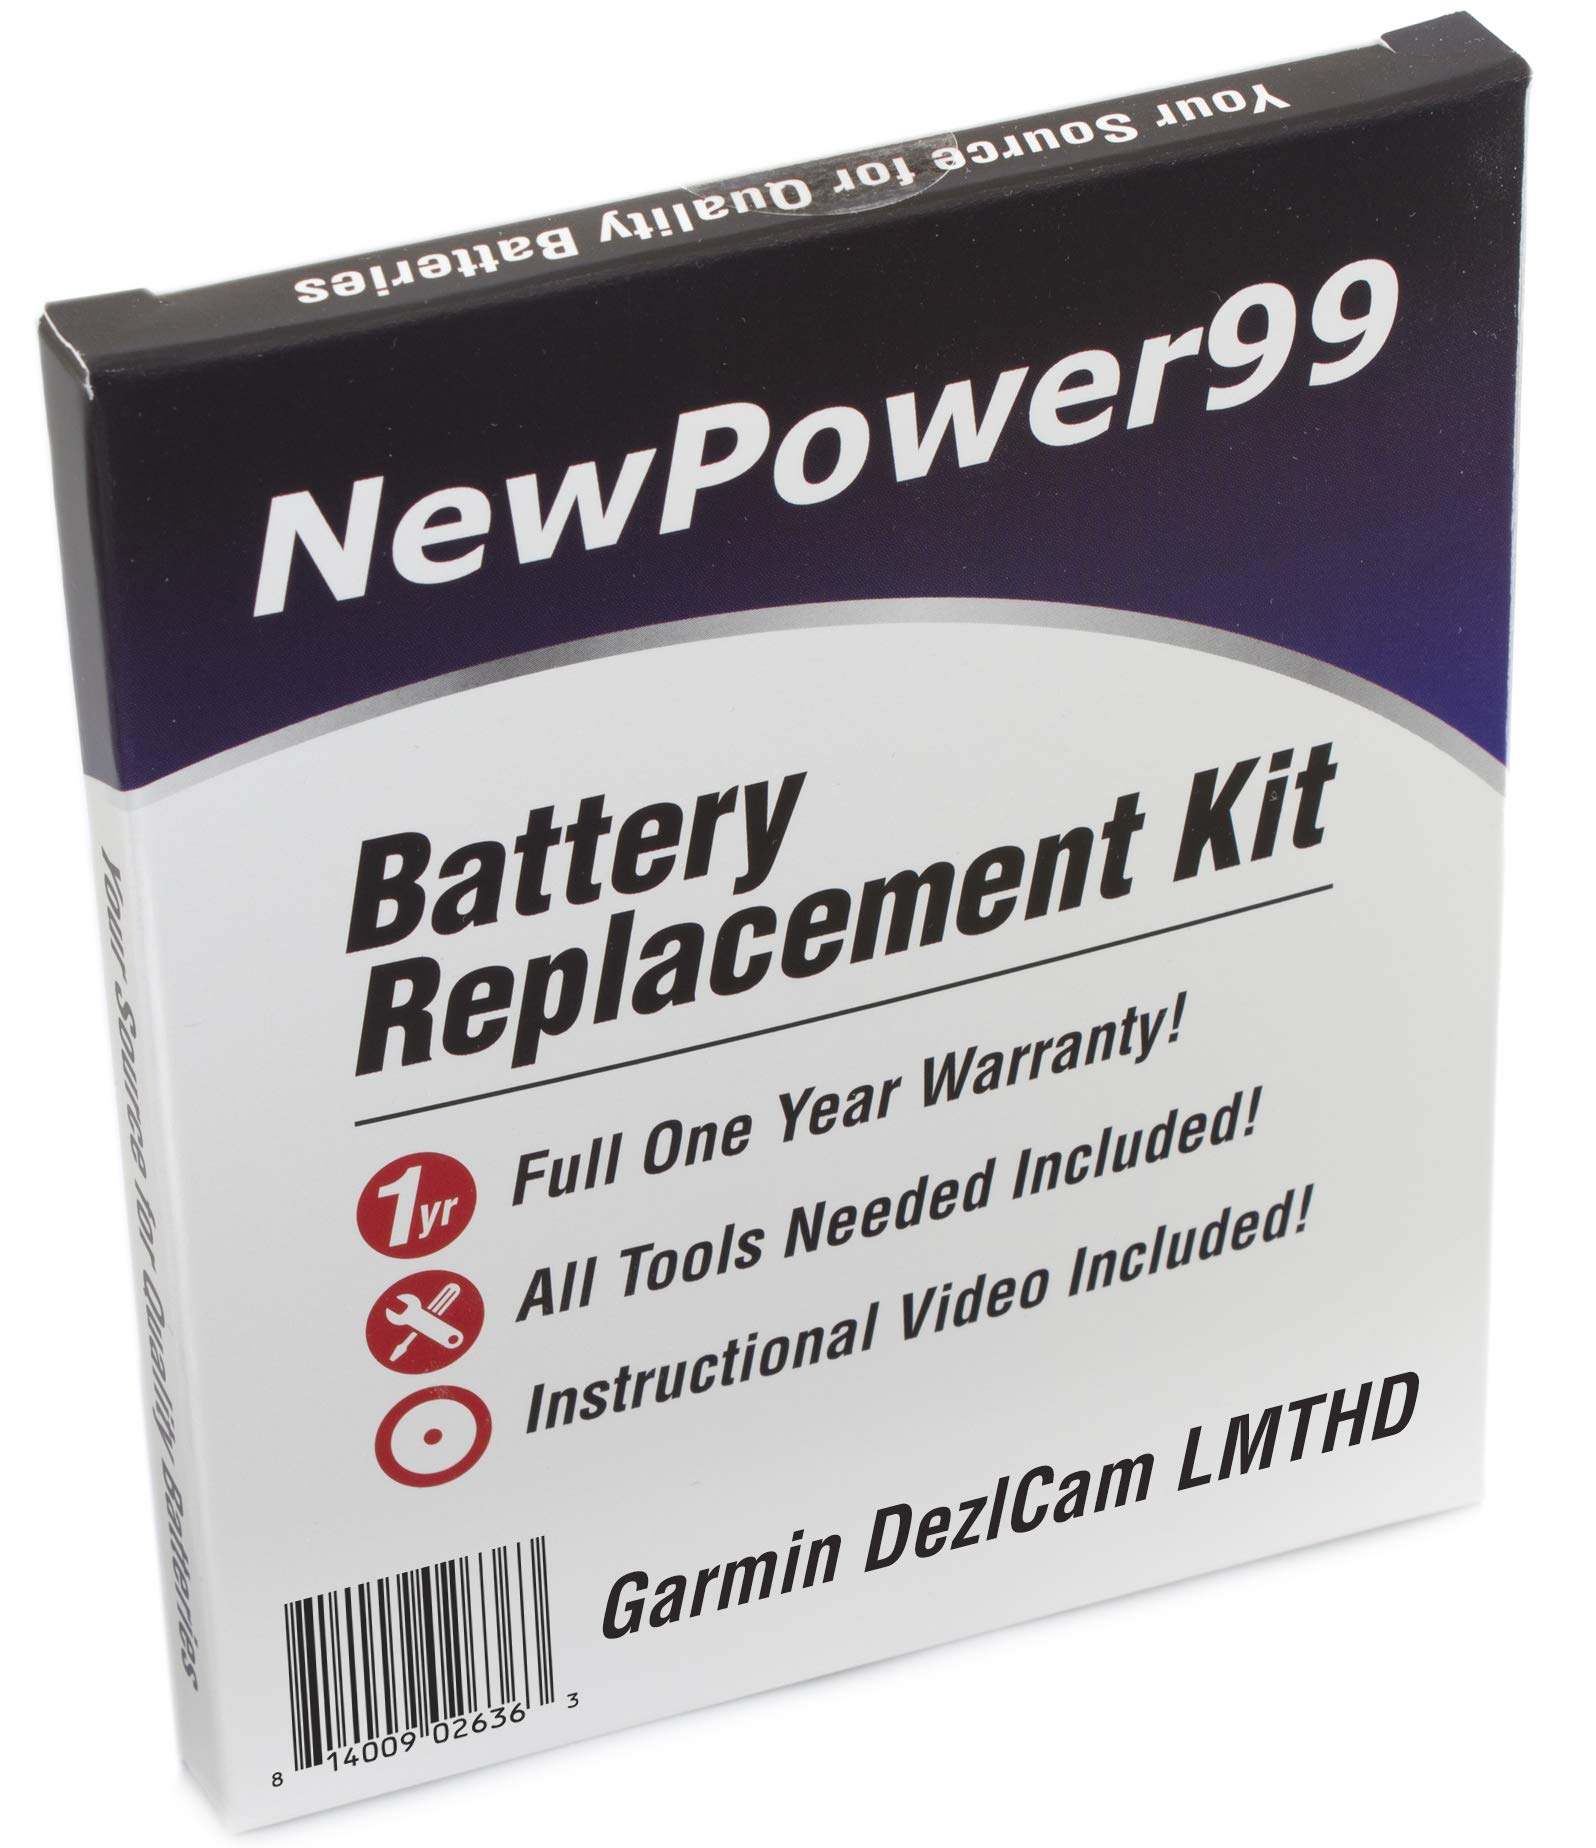 Battery Replacement Kit Garmin DezlCam LMTHD Installation Video, Tools Extended Life Battery.